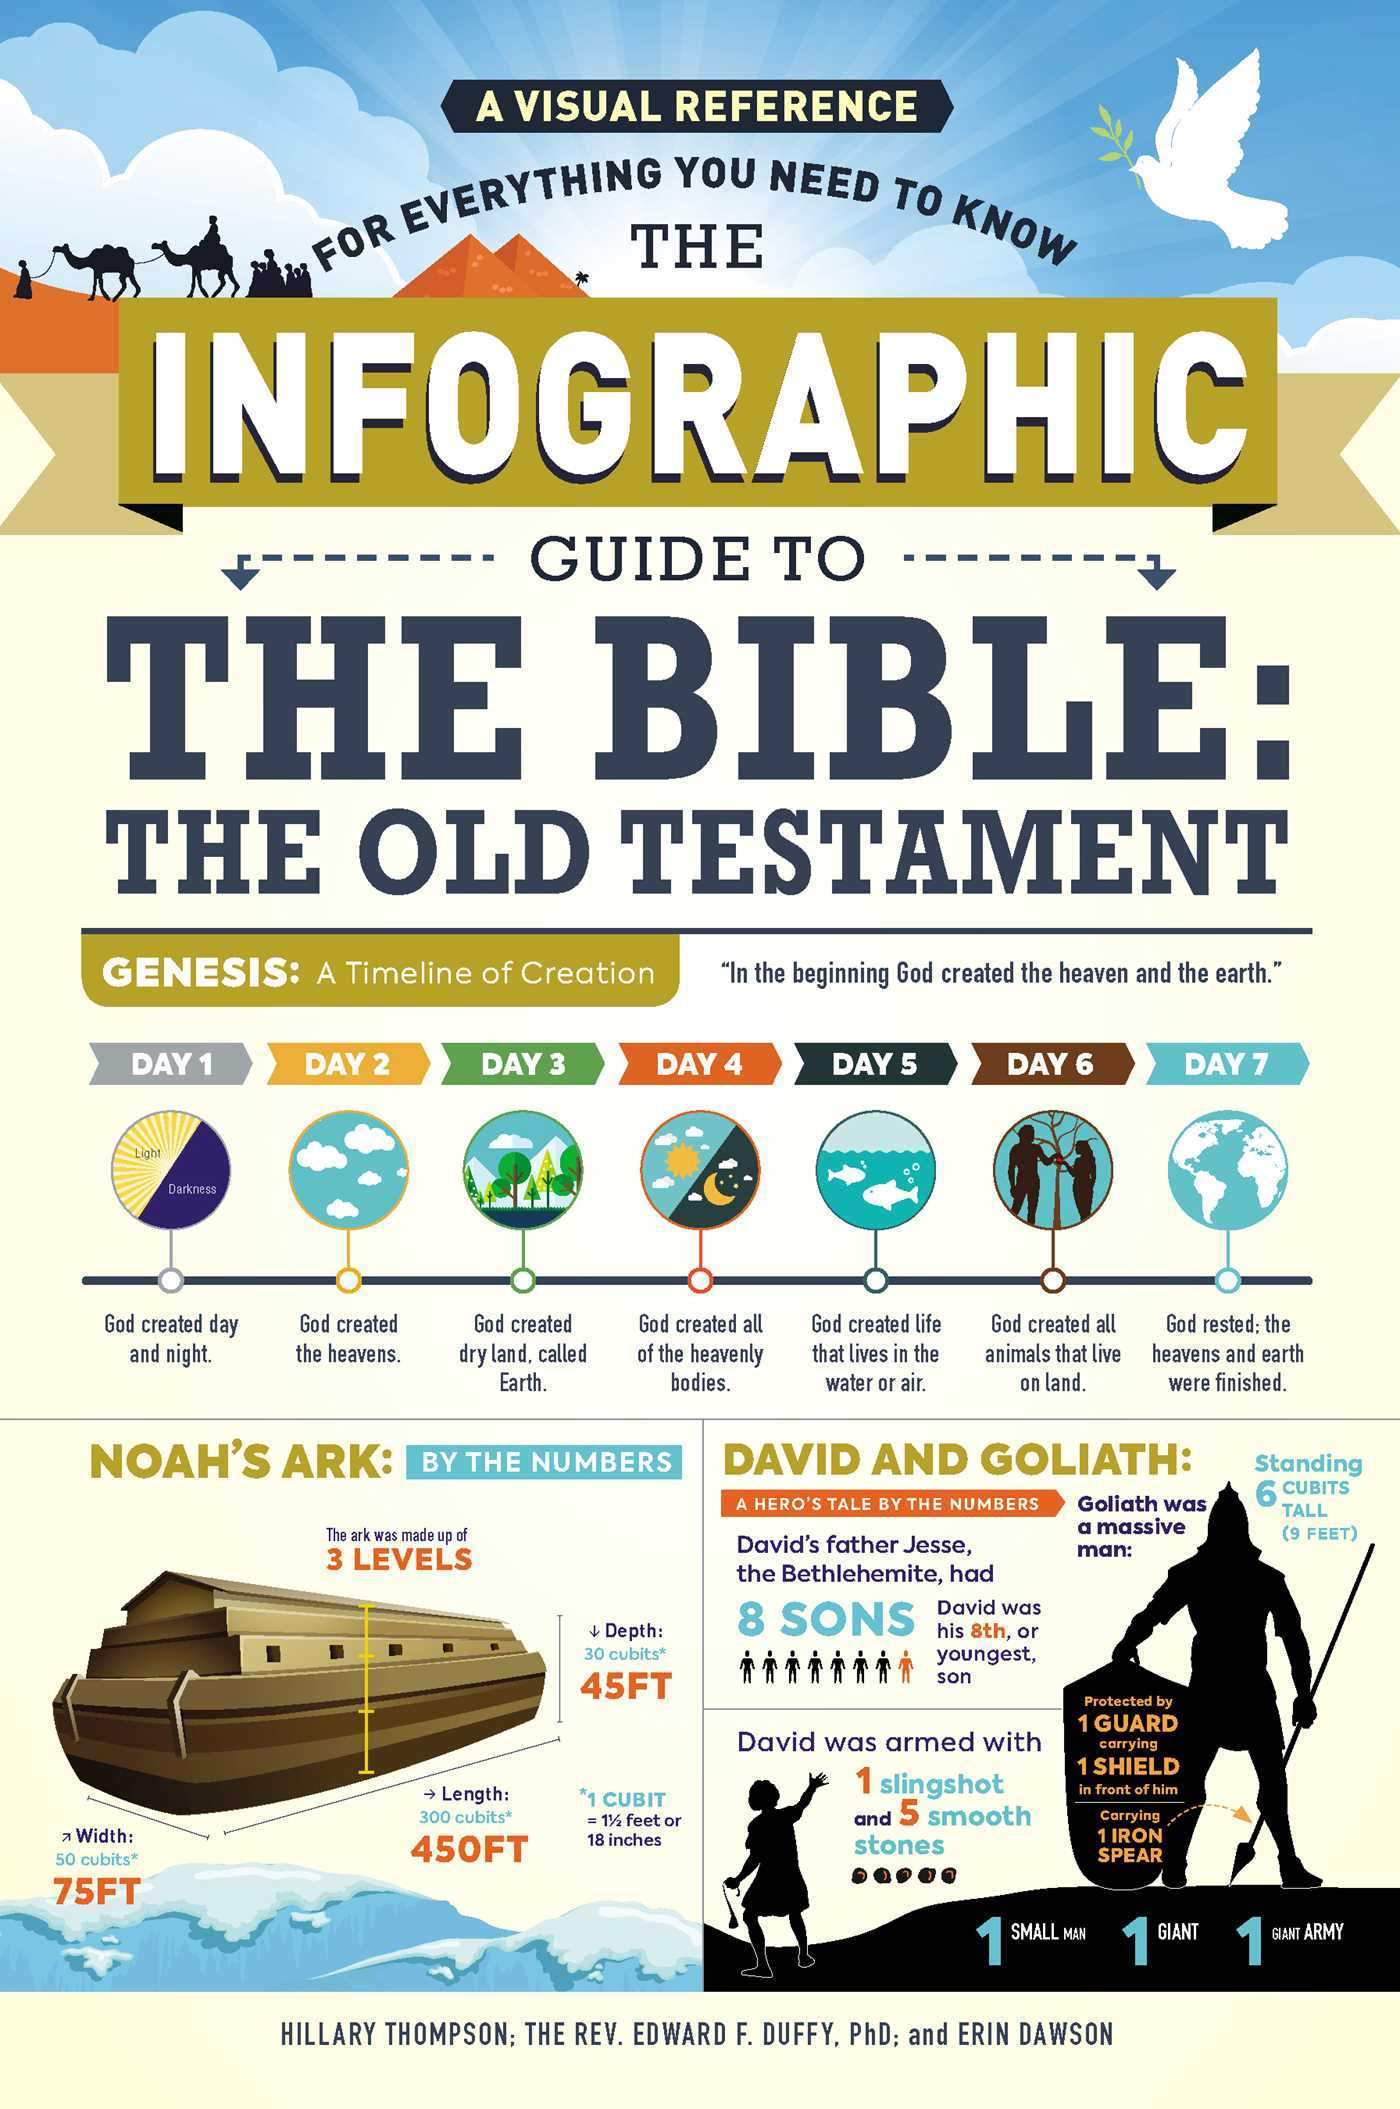 the infographic guide to the bible the old testament 9781507204870 hr Coffee Table Books On India